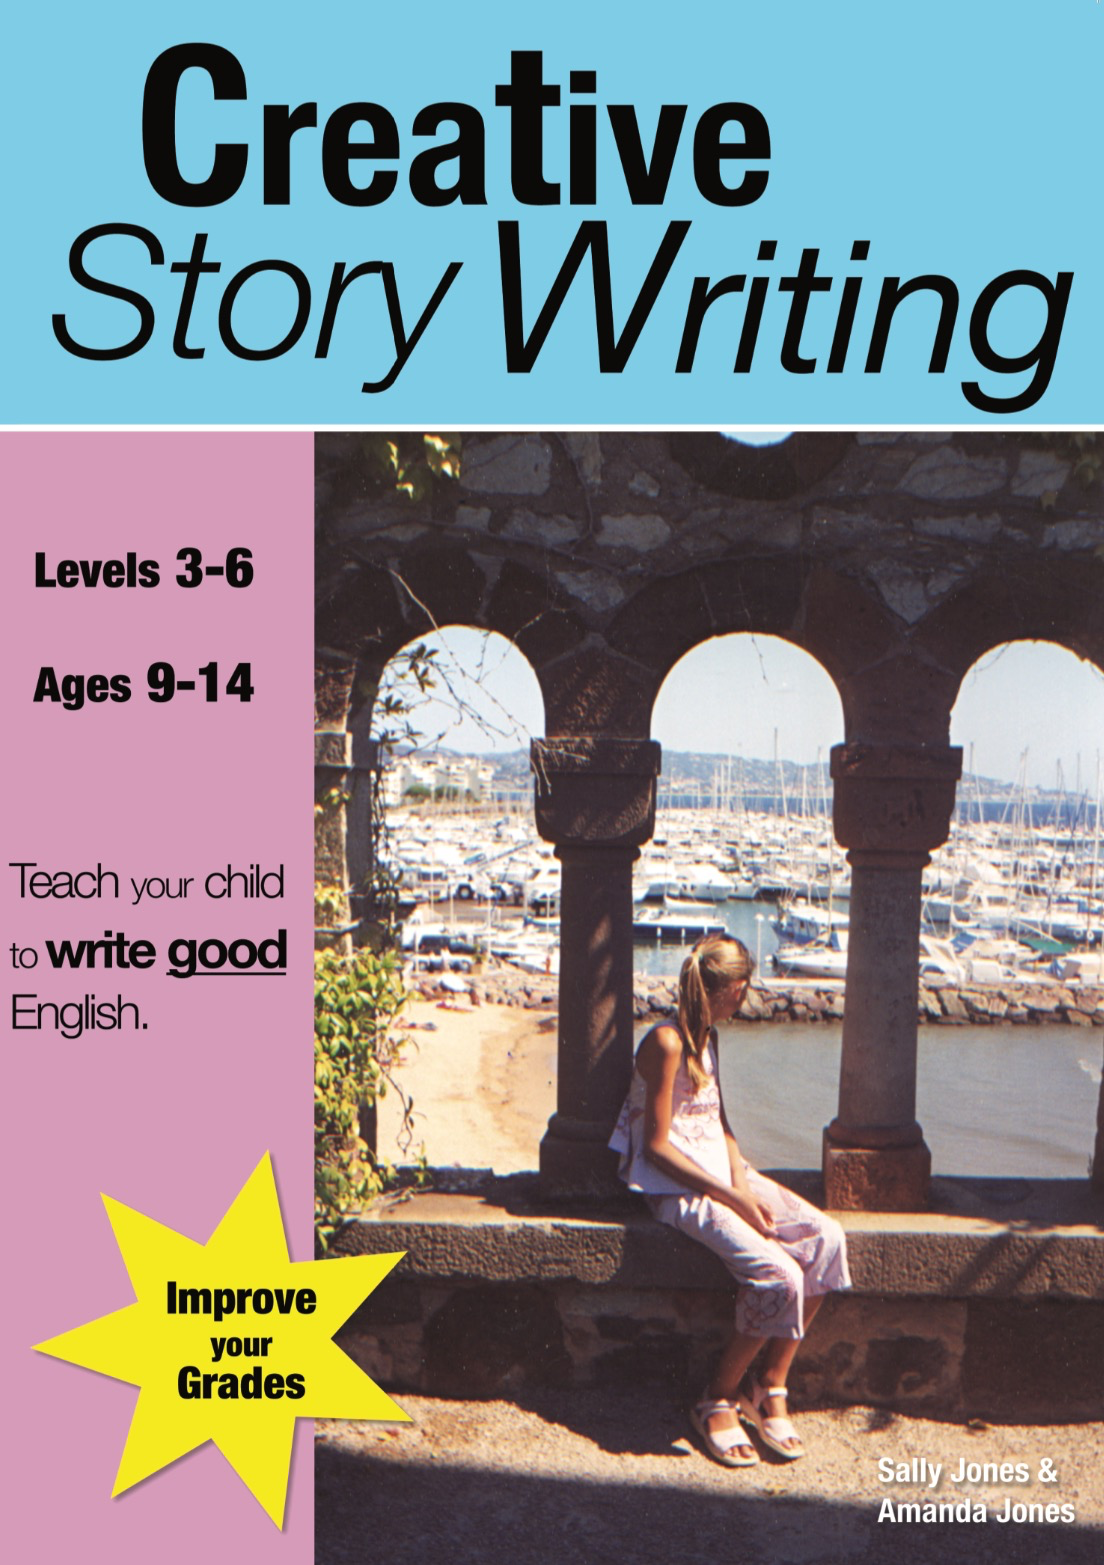 Creative Story Writing (9-12 years) Print Version